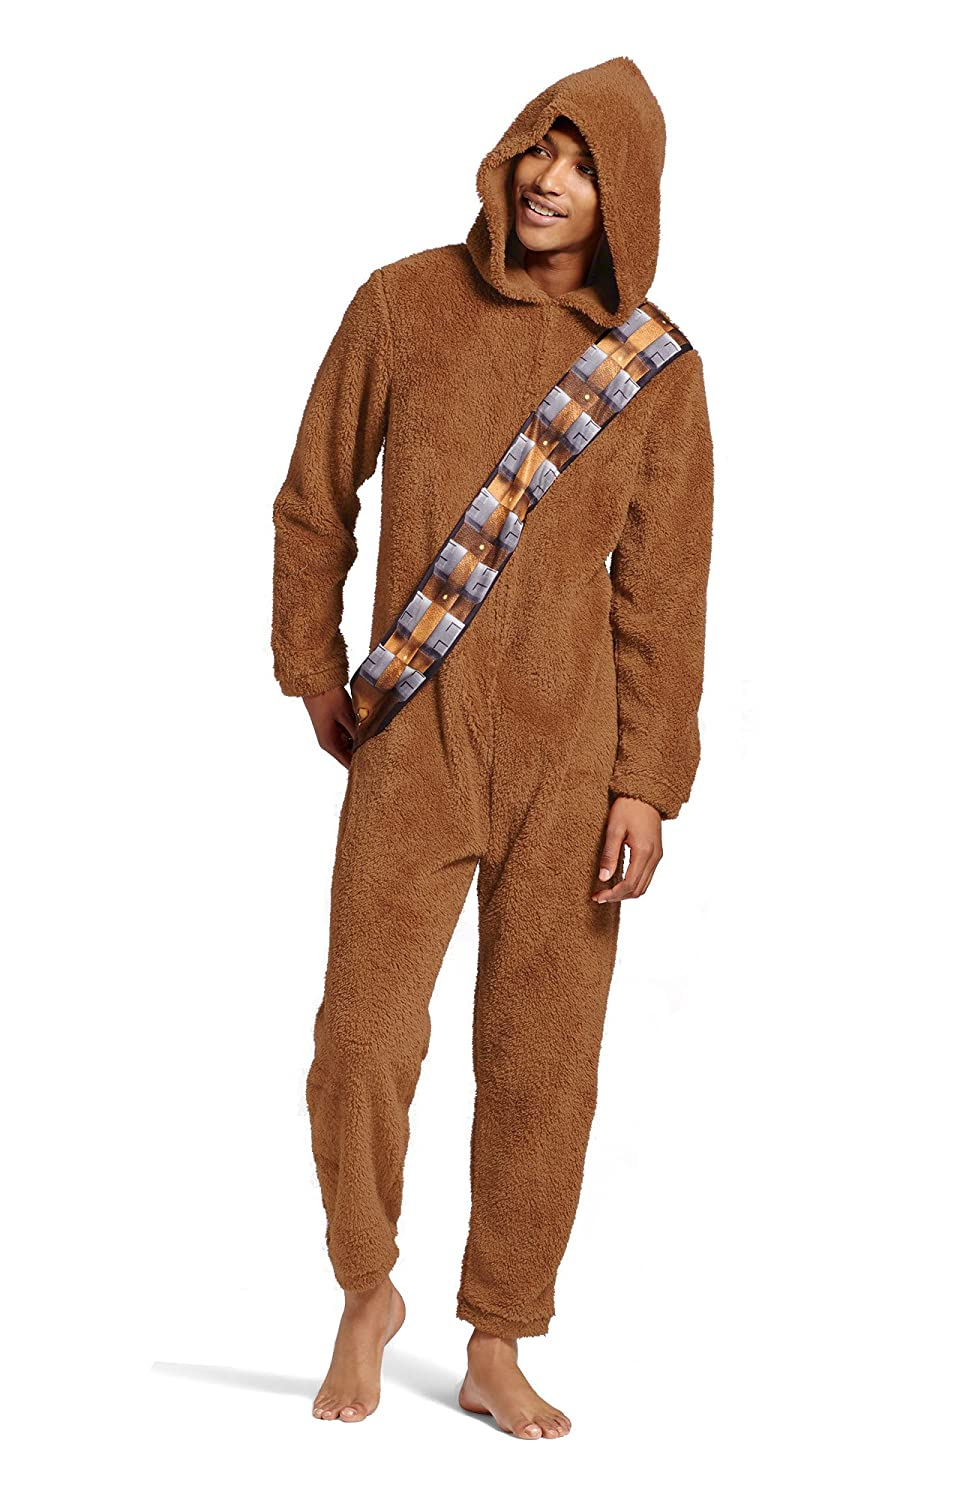 Star Wars Mens Chewbacca Adult Union Suit Hooded Pajama Costume